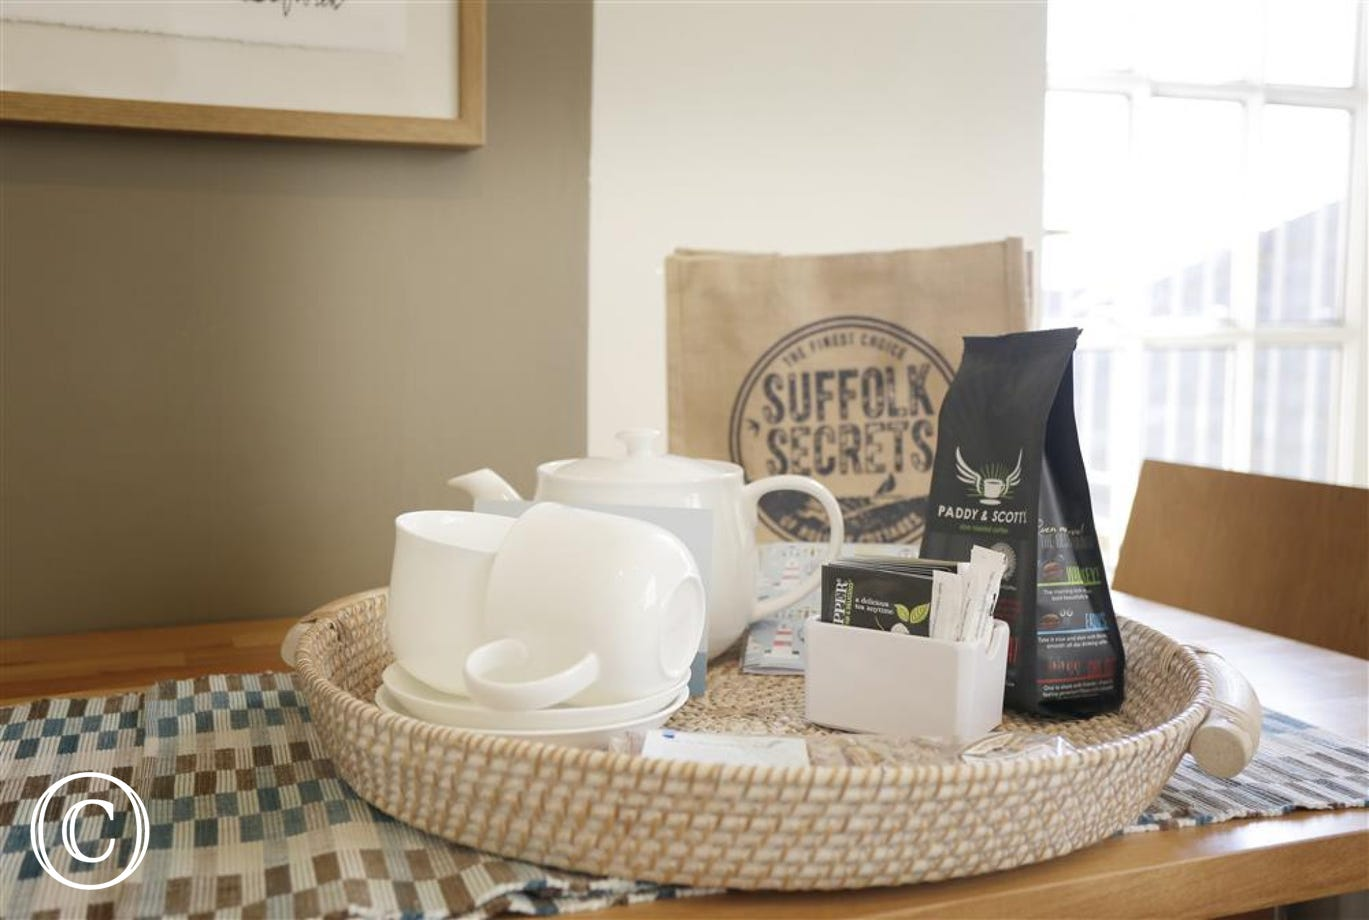 After a long journey to the property you can settle down to a nice cup of Suffolk coffee or a soothing brew before you unpack.